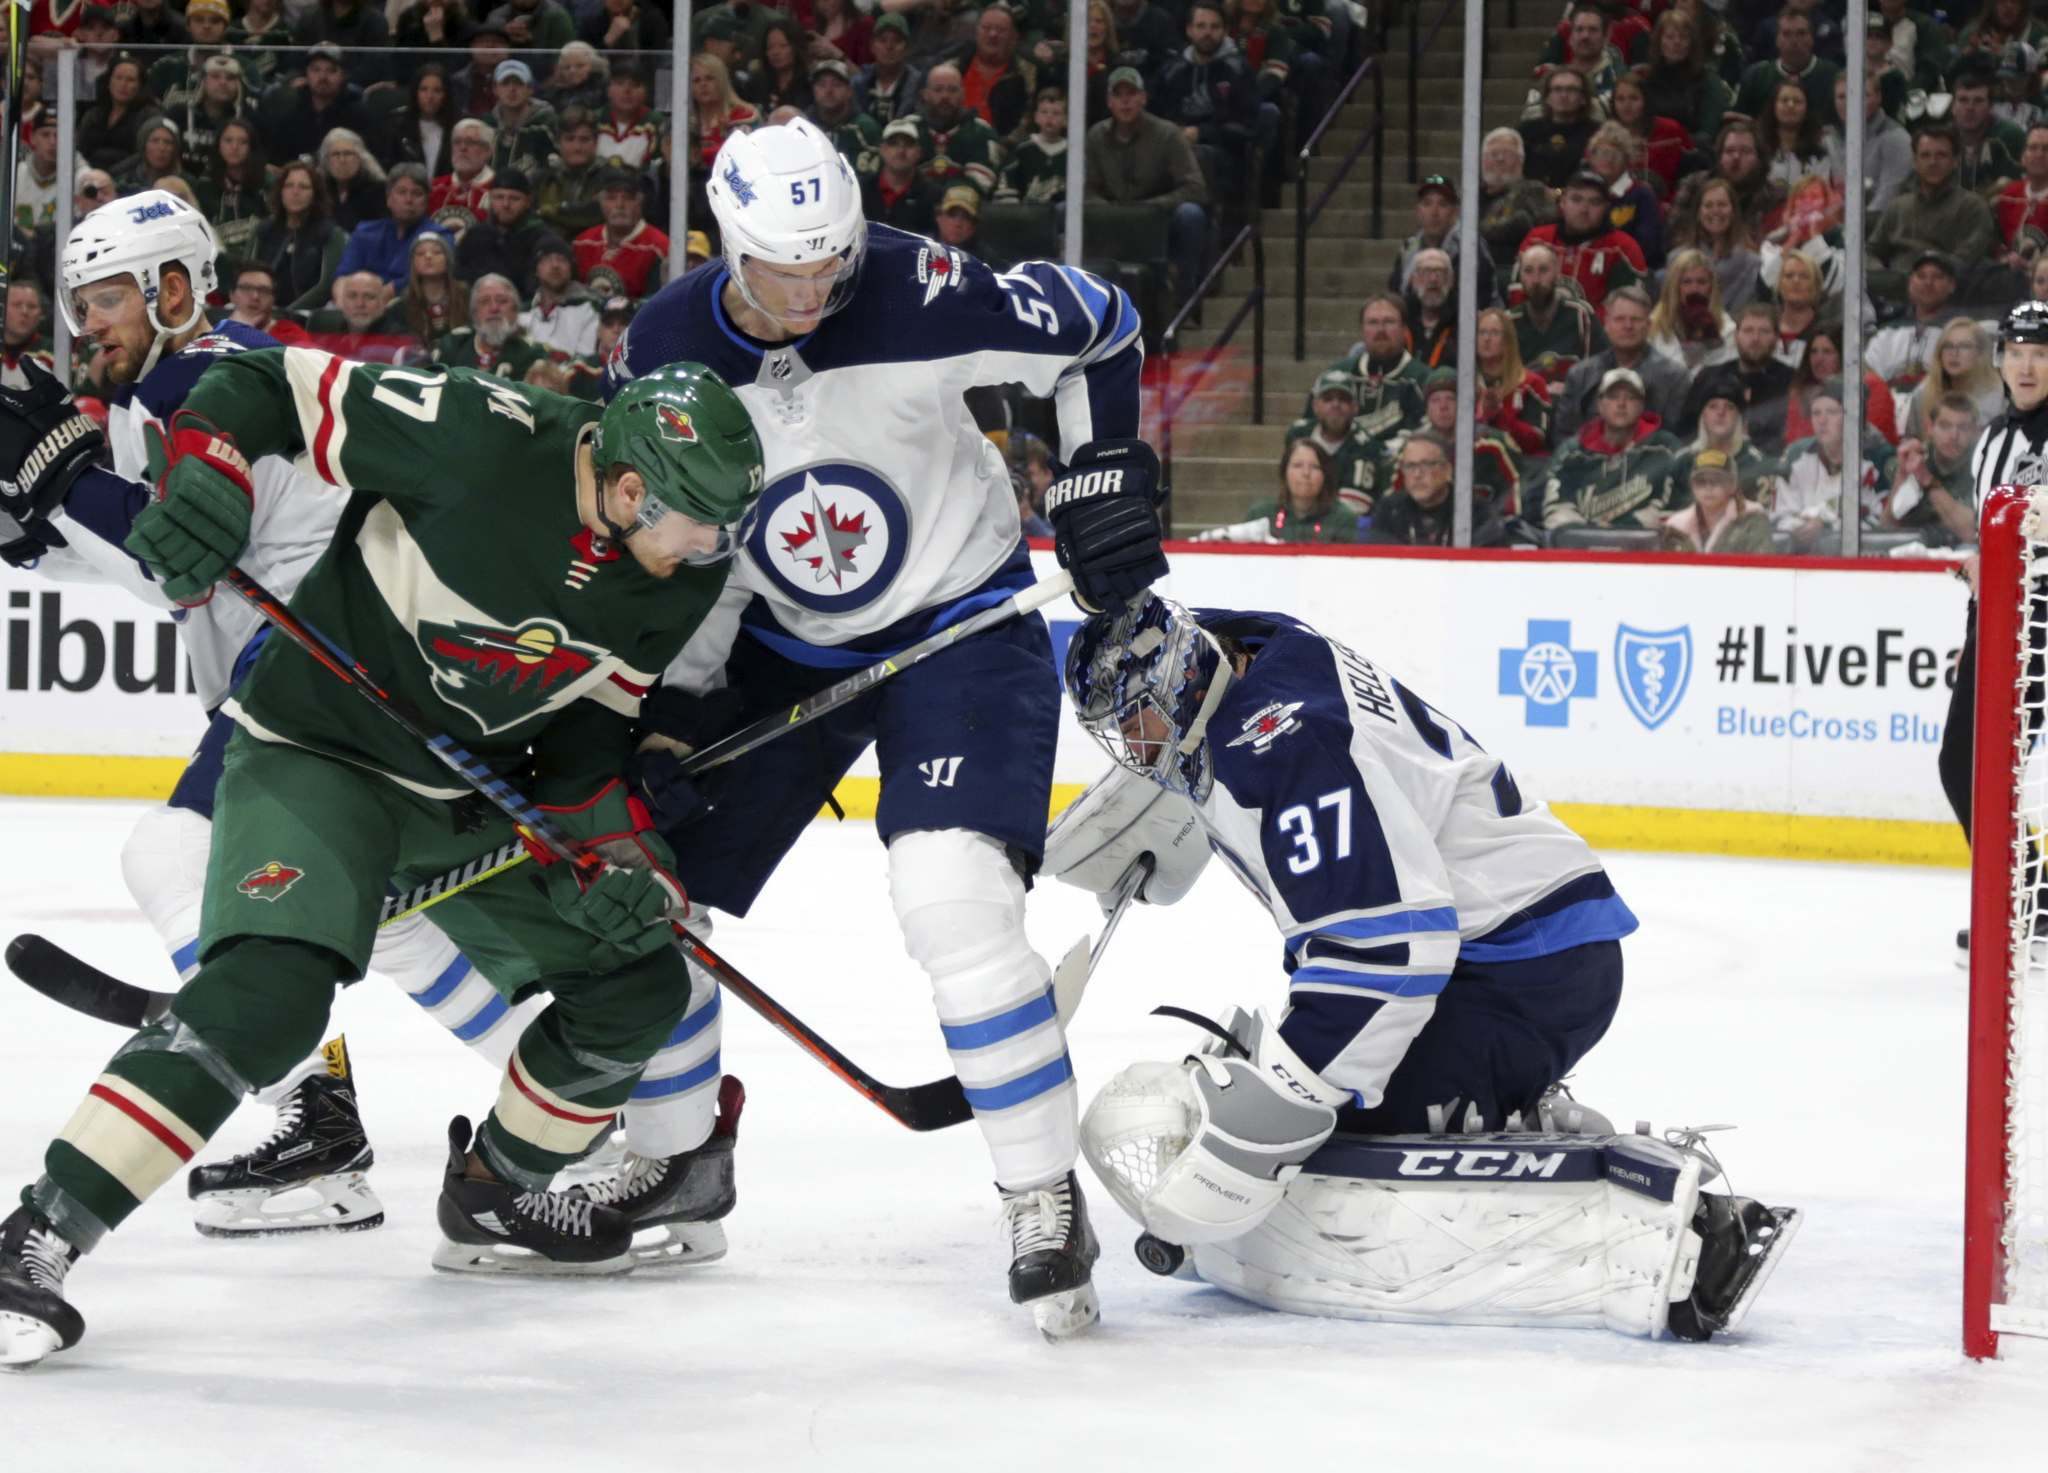 AP Photo/Andy Clayton-King</p><p>Minnesota Wild left wing Marcus Foligno, left, tangles with Winnipeg Jets defenseman Tyler Myers in the first period of their game on Sunday. Myers would later leave the game after getting injured during a collision with Foligno.</p>